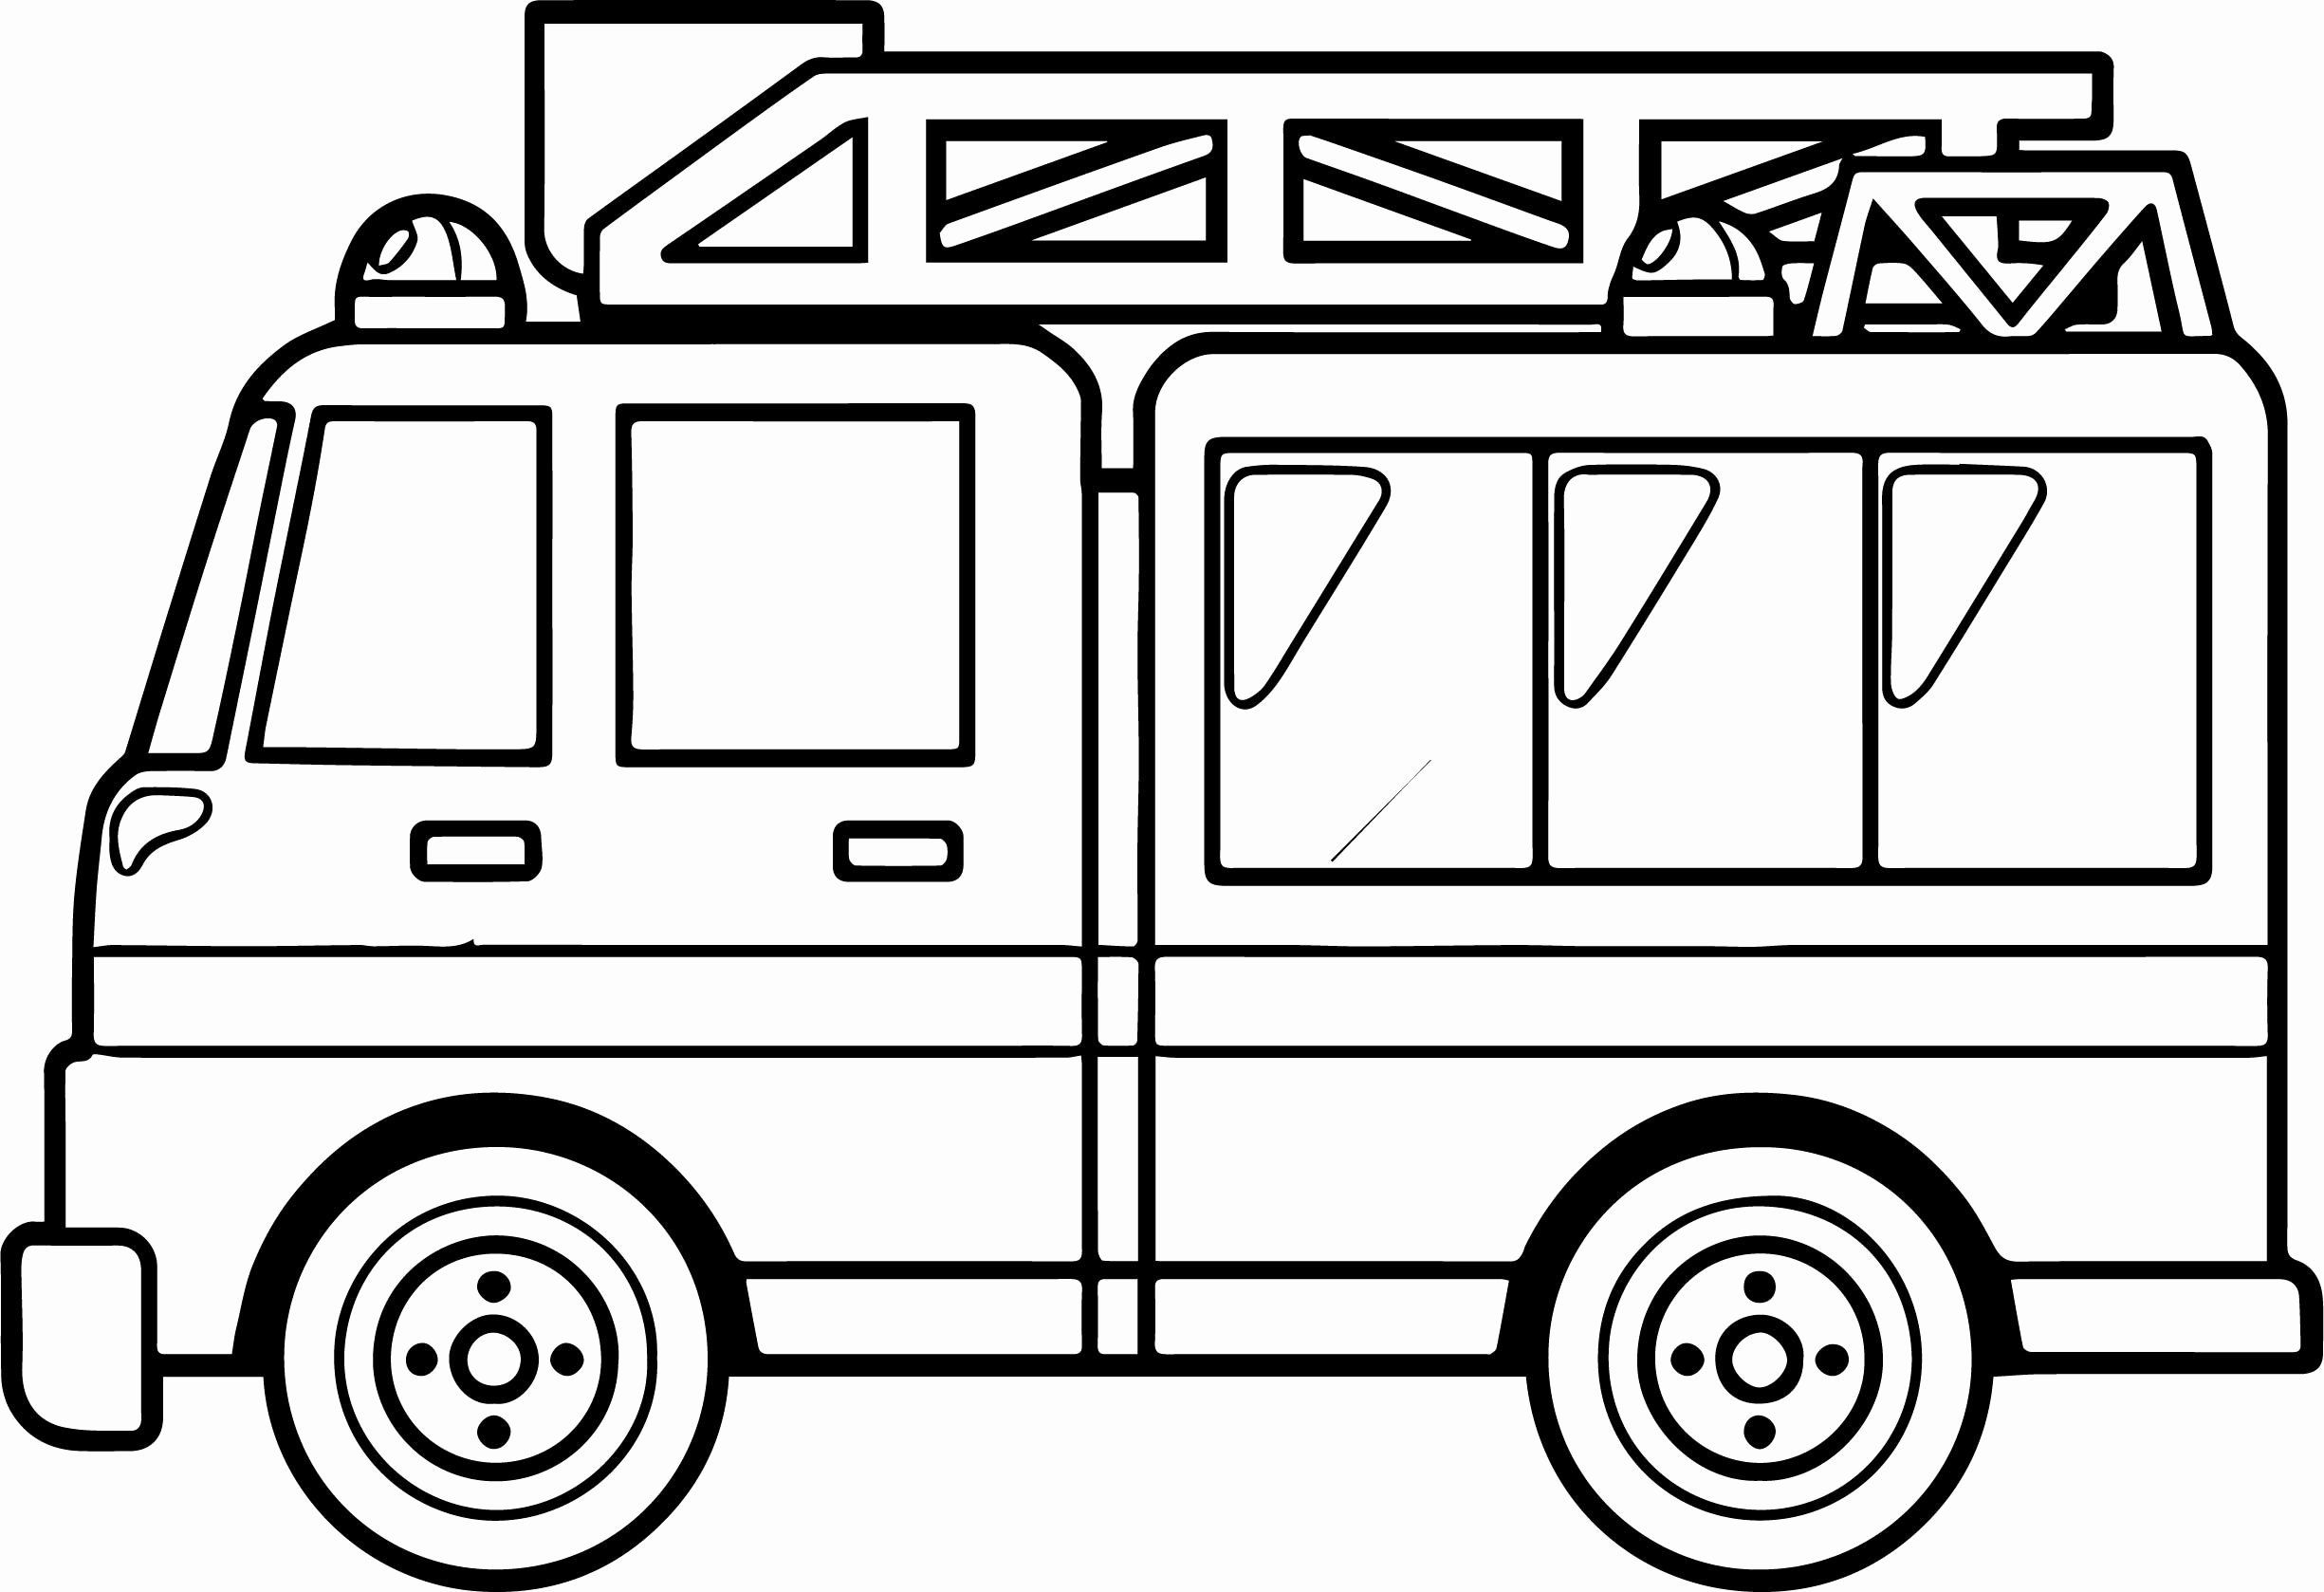 Truck Coloring Sheets Monster Truck Coloring Pages Firetruck Coloring Page Cars Coloring Pages